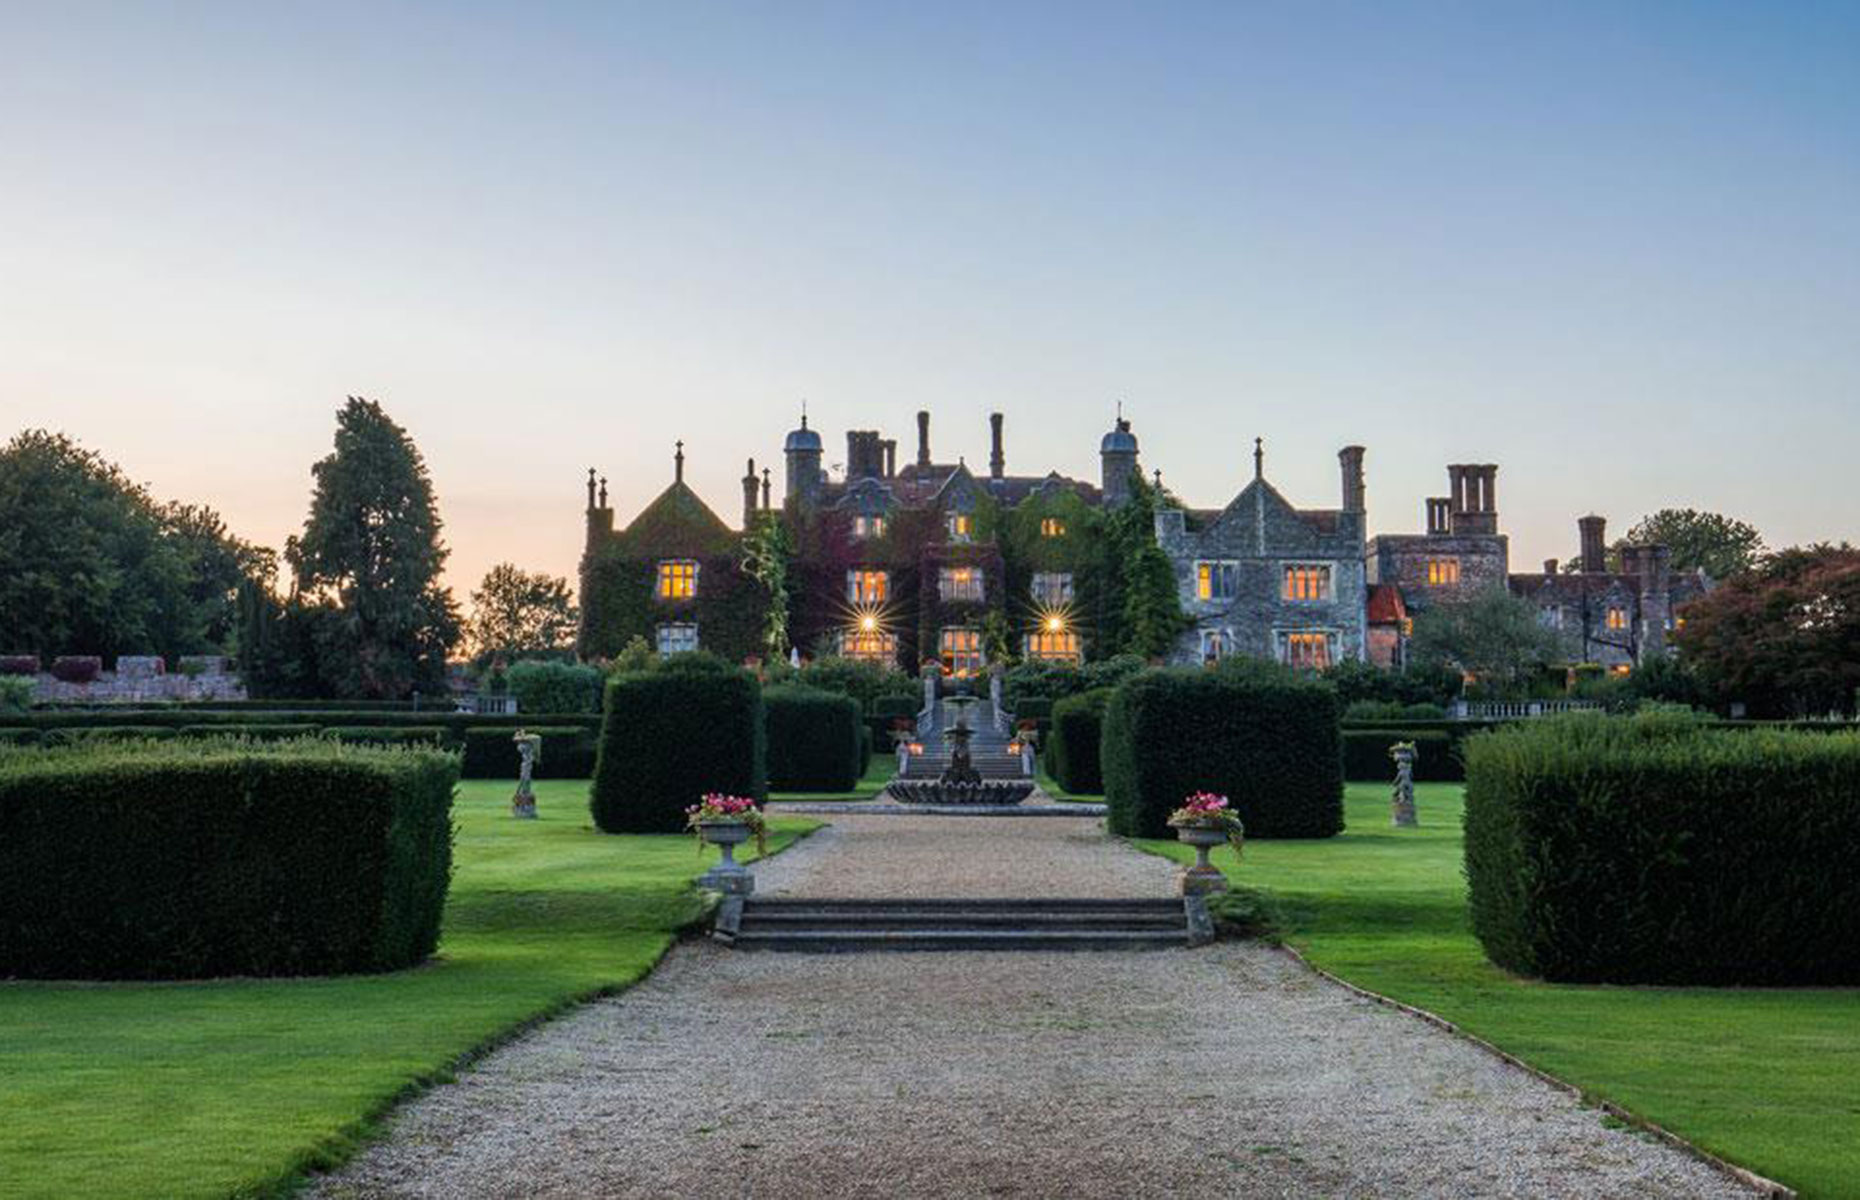 Eastwell Manor (Image: Eastwell Manor/Facebook)